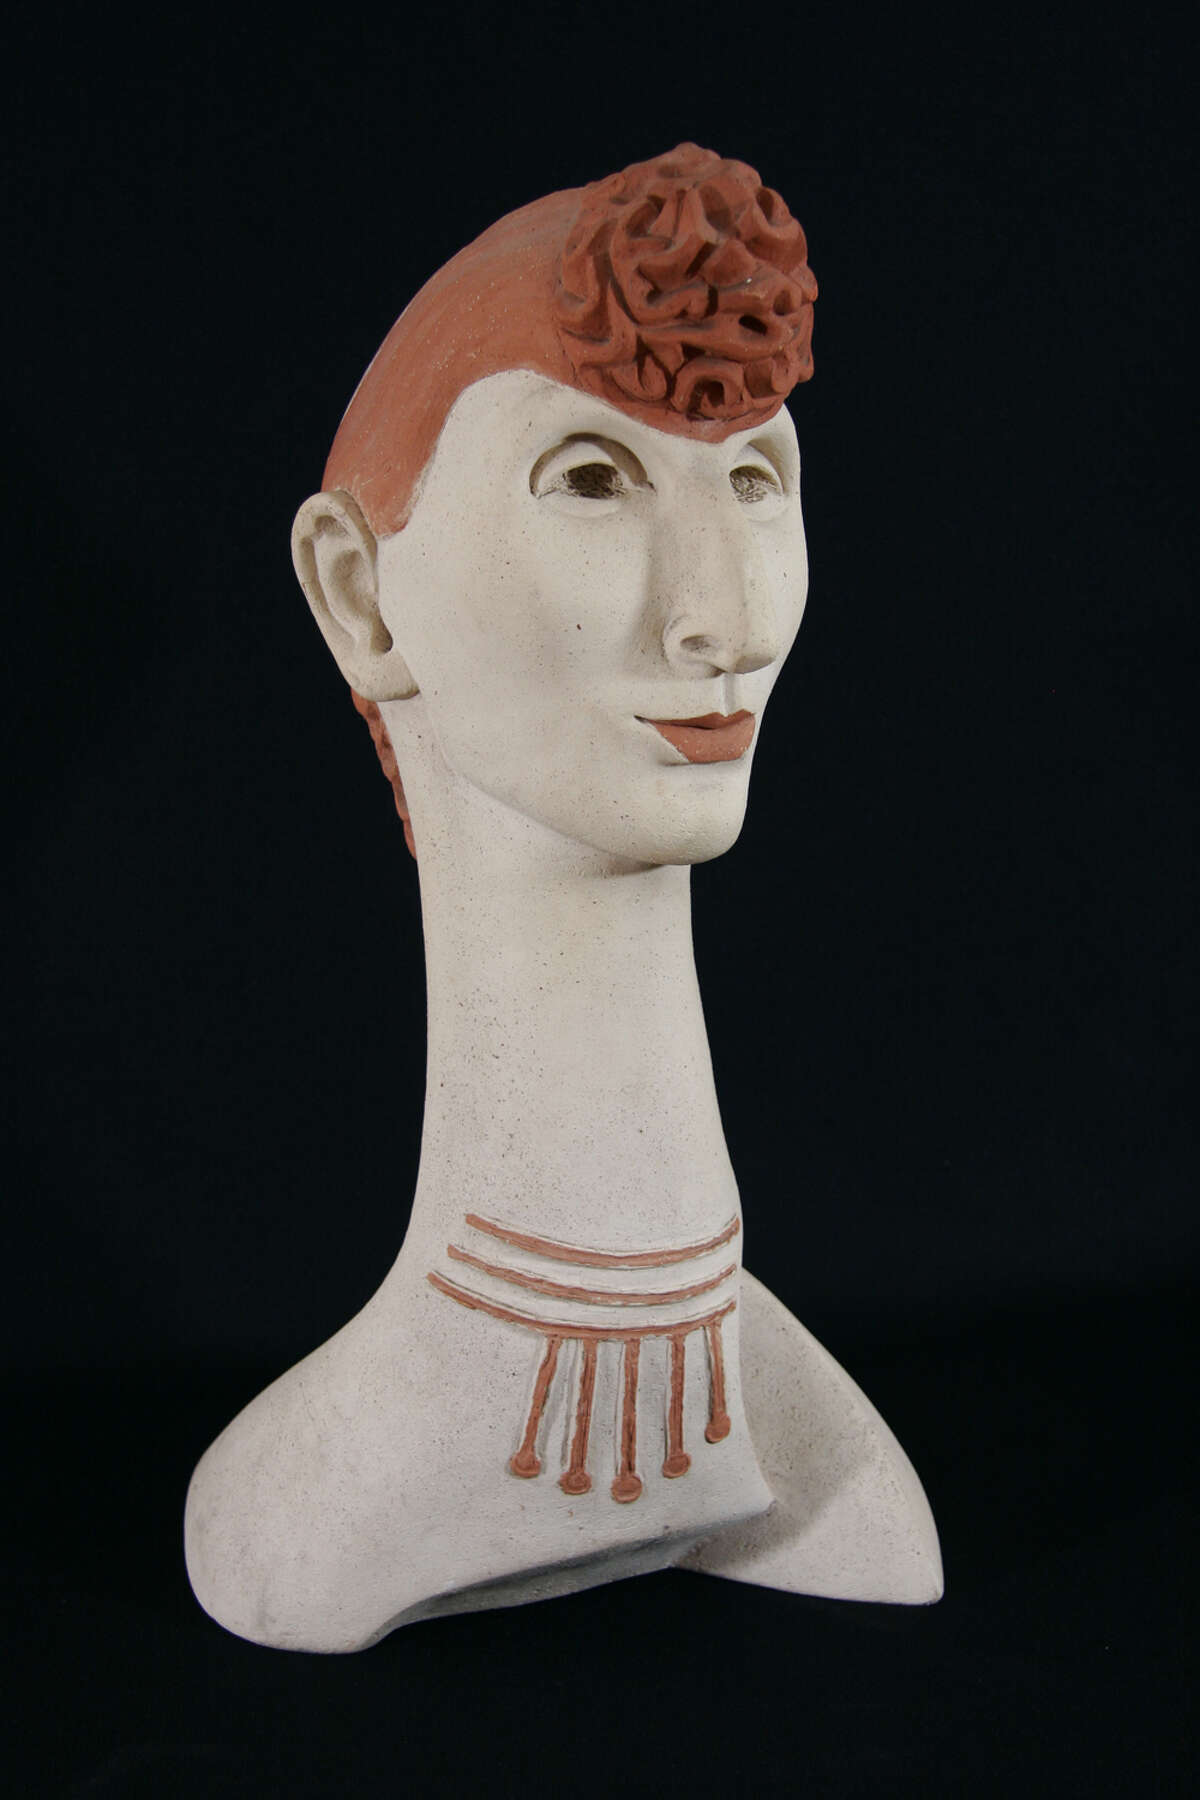 """Woodstock Artists Association & Museum Gela Forster (1892-1957) """"Caricature of A Redhead"""" (n.d. ceramic) Woodstock Artists Association & Museum, Gift of Frances Gray Archipenko."""